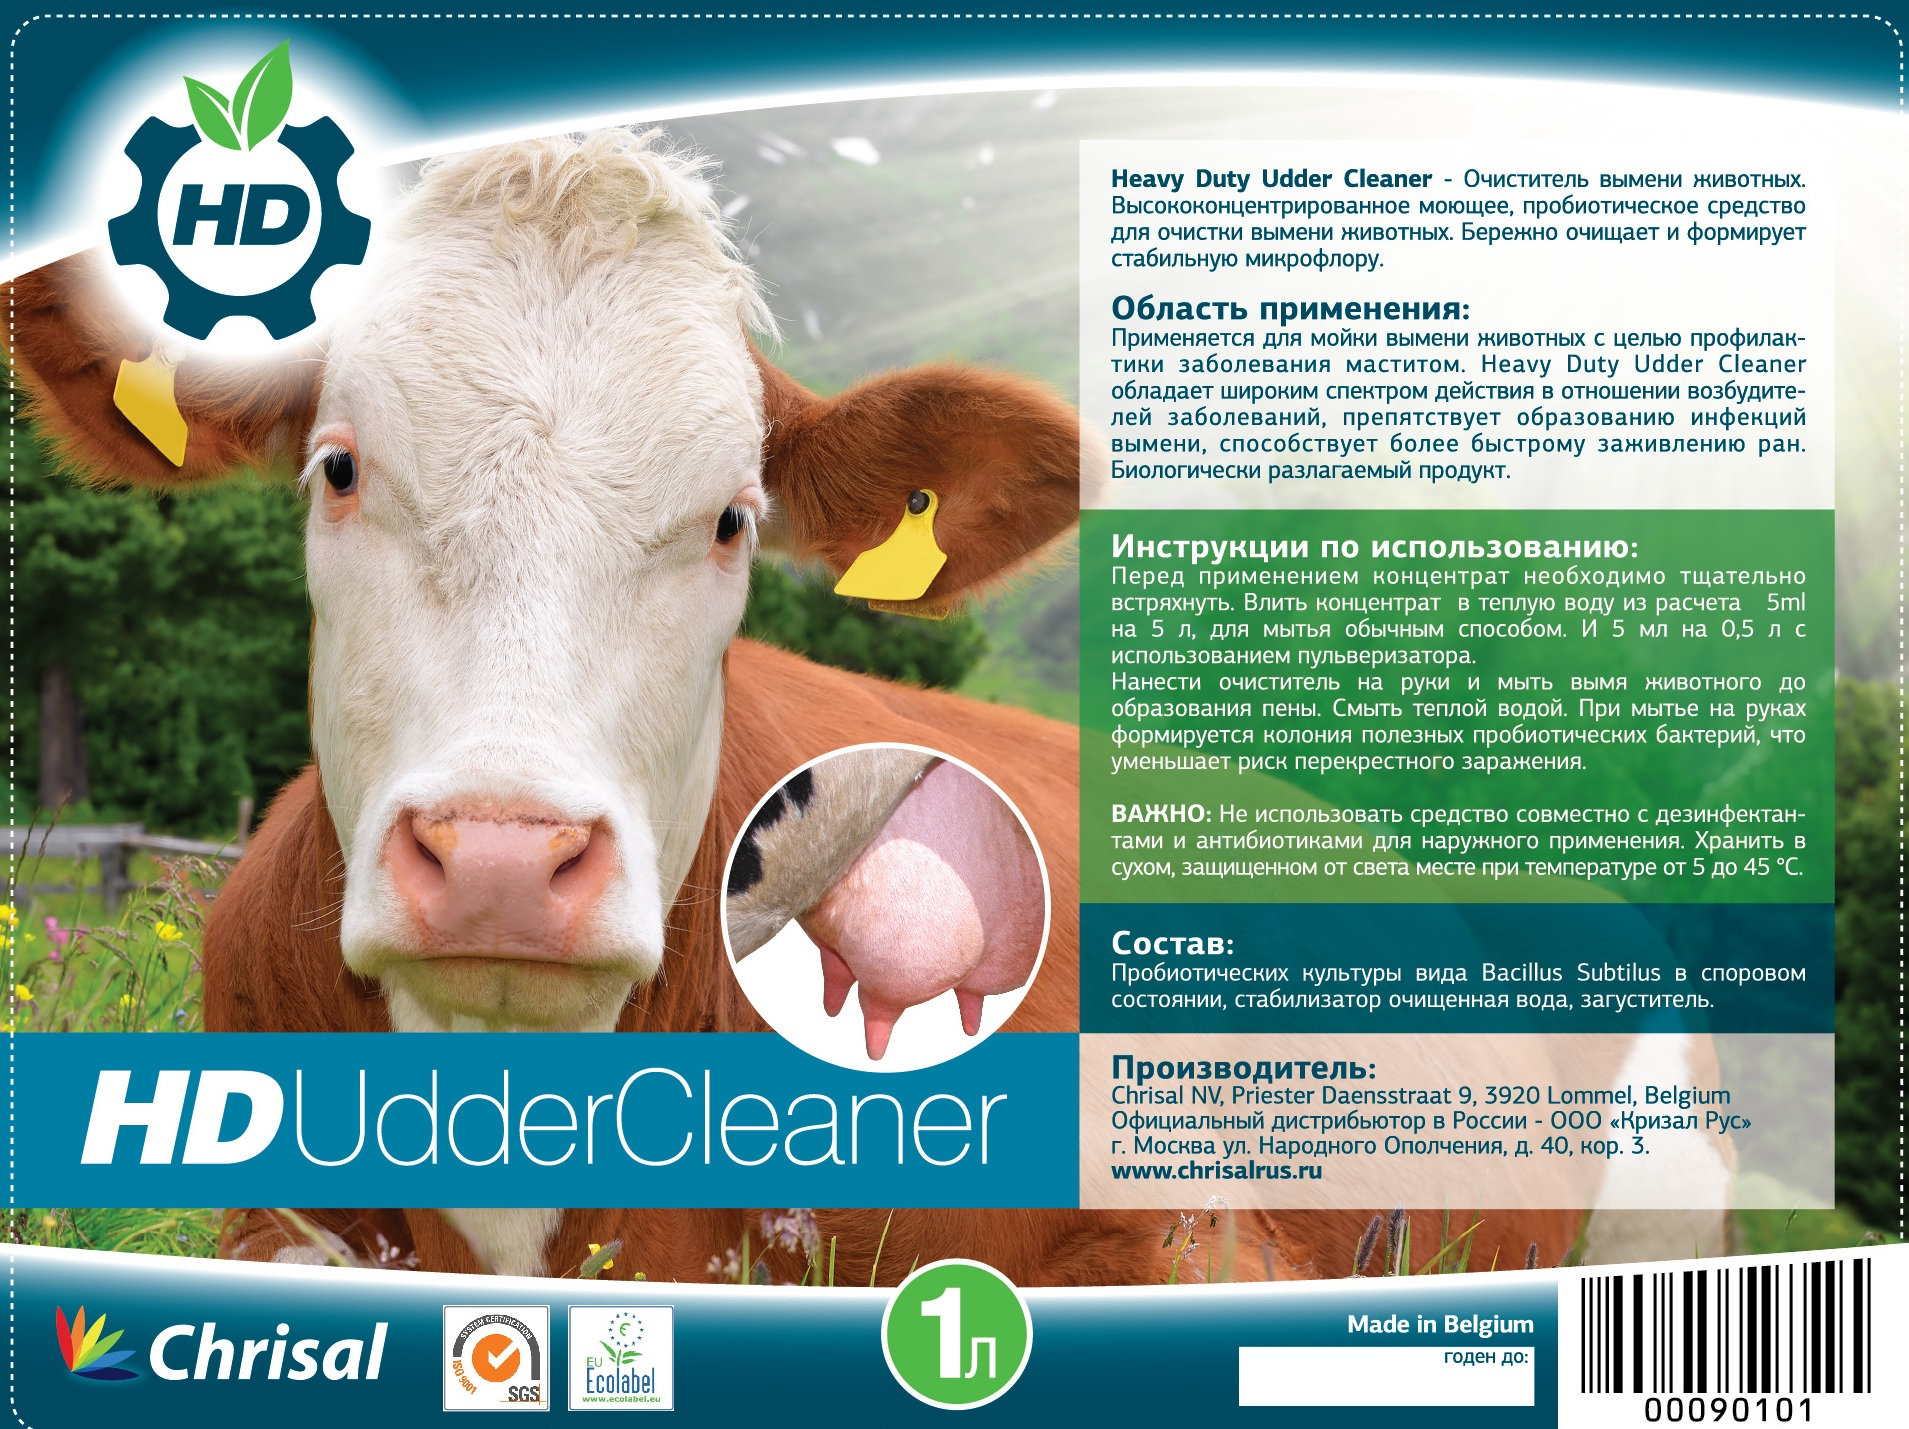 HD Udder Cleaner